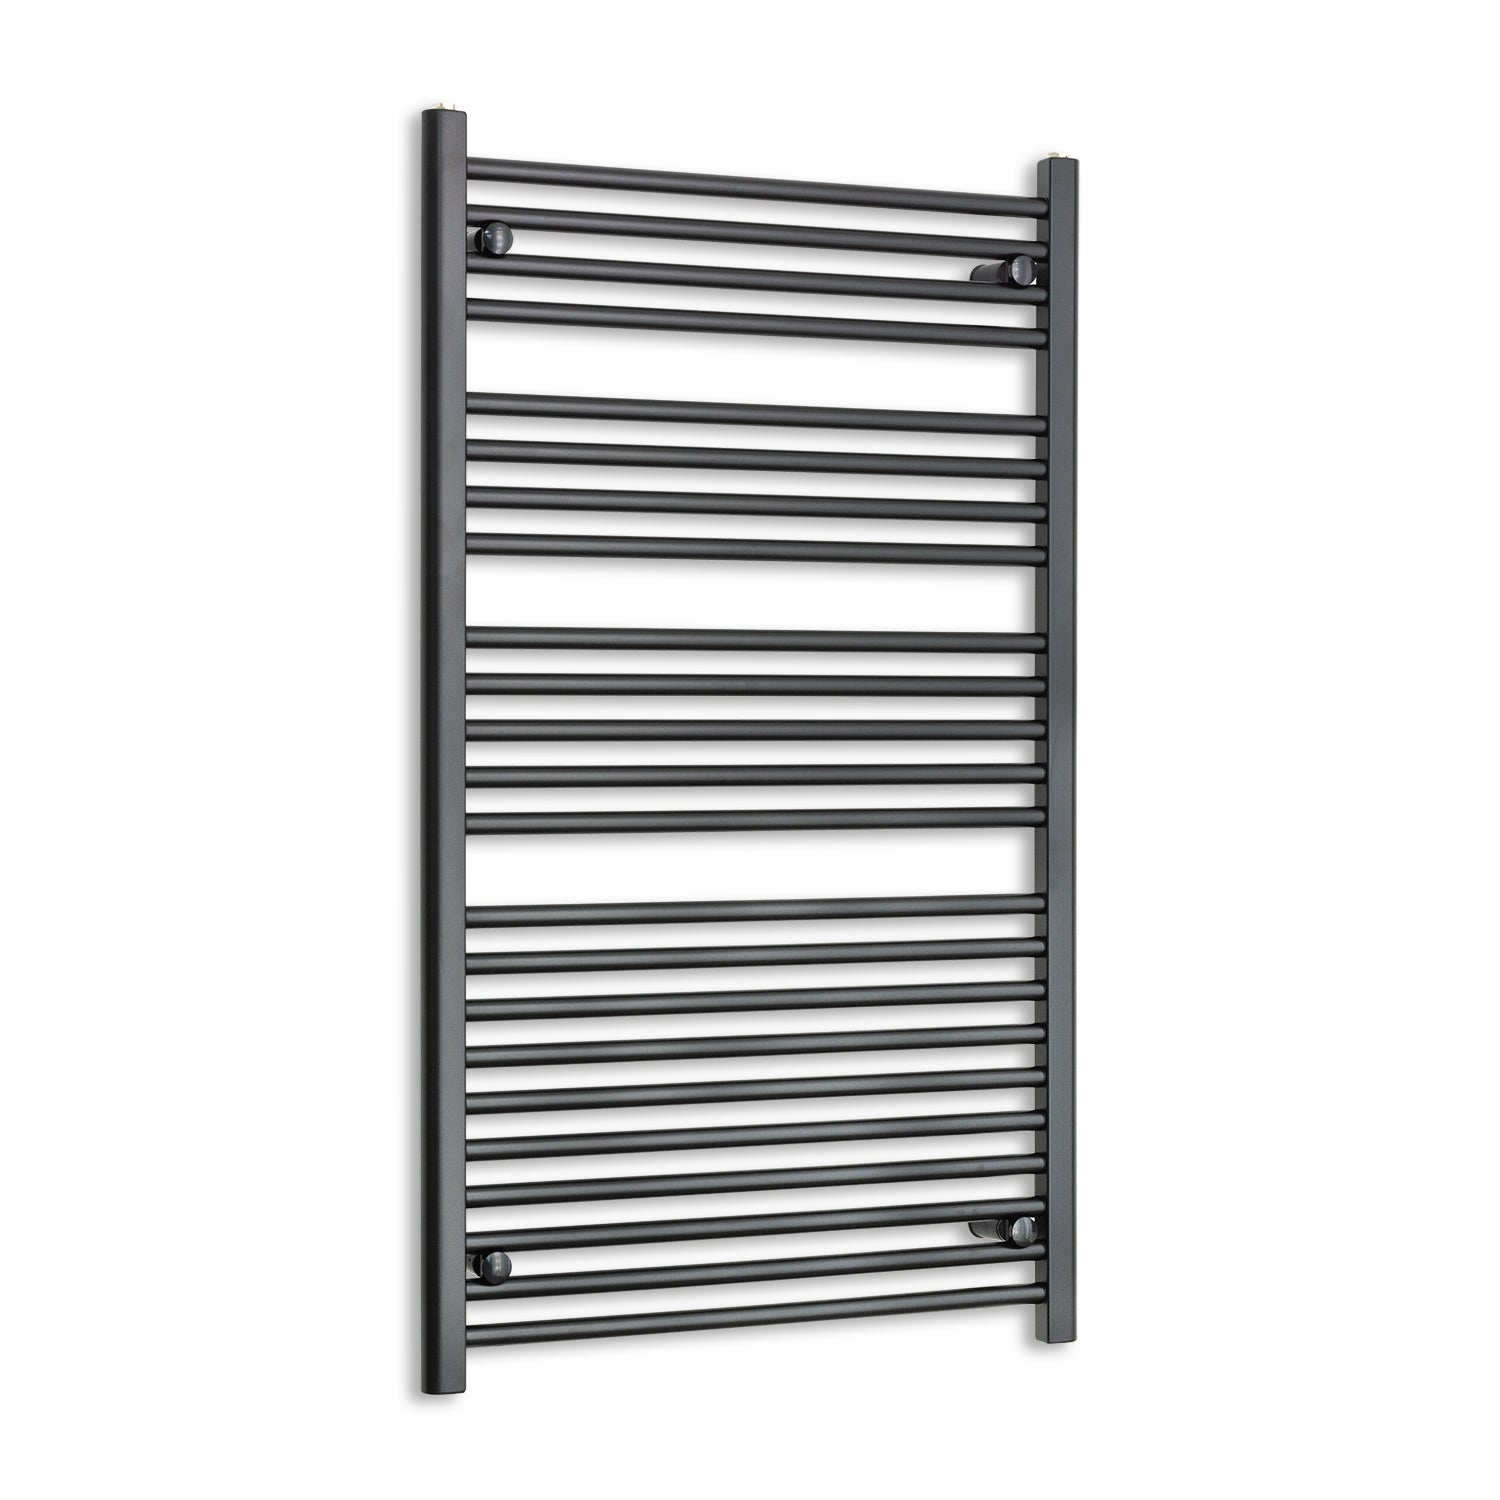 700mm Wide 1200mm High Black Towel Rail Radiator